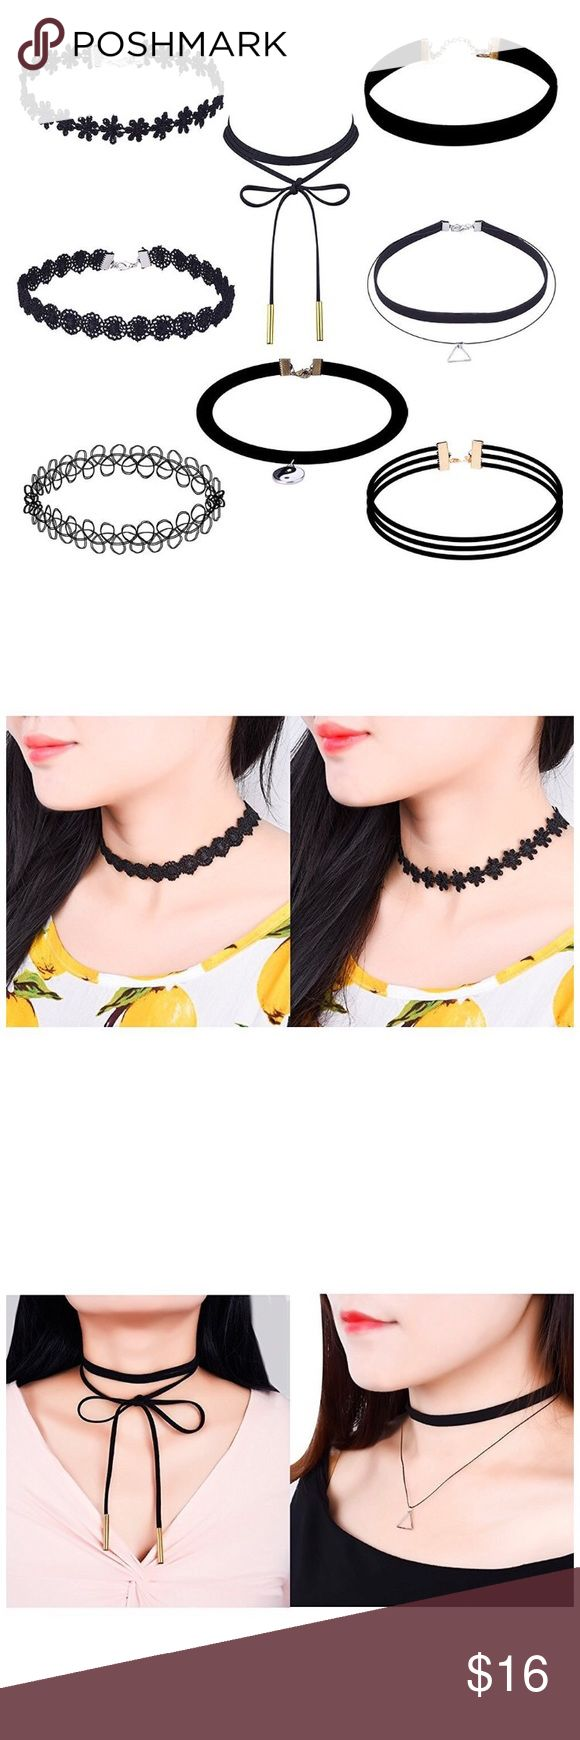 8 Pieces Choker Necklace Set, Black Cute, simple and elegant.  Each necklace is carefully wrapped.   Choker length: approx. 30 cm/ 11.8 inch  Extender chain length: 5 cm/ 2 inch  Total length is about 35 cm/ 13.8 inch   Package includes:  8 Necklaces Jewelry Necklaces